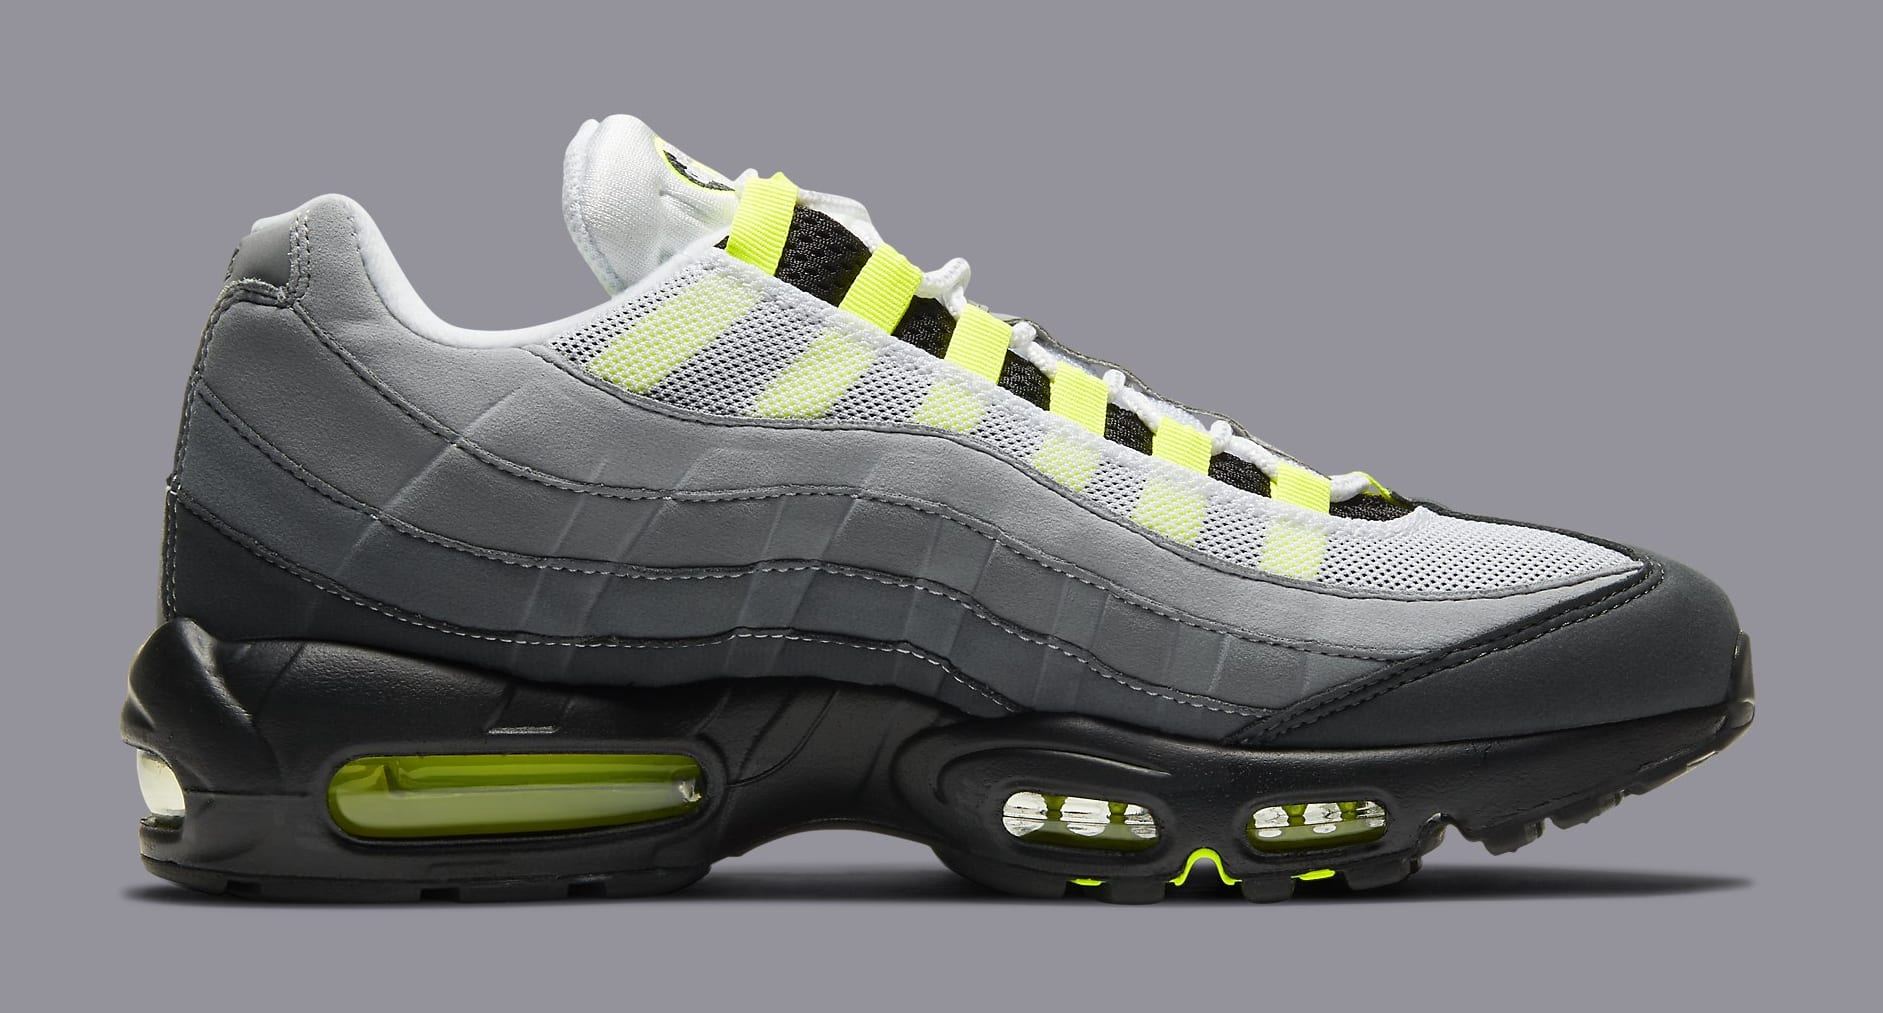 Nike Air Max 95 'Neon 2020' CT1689-001 Medial